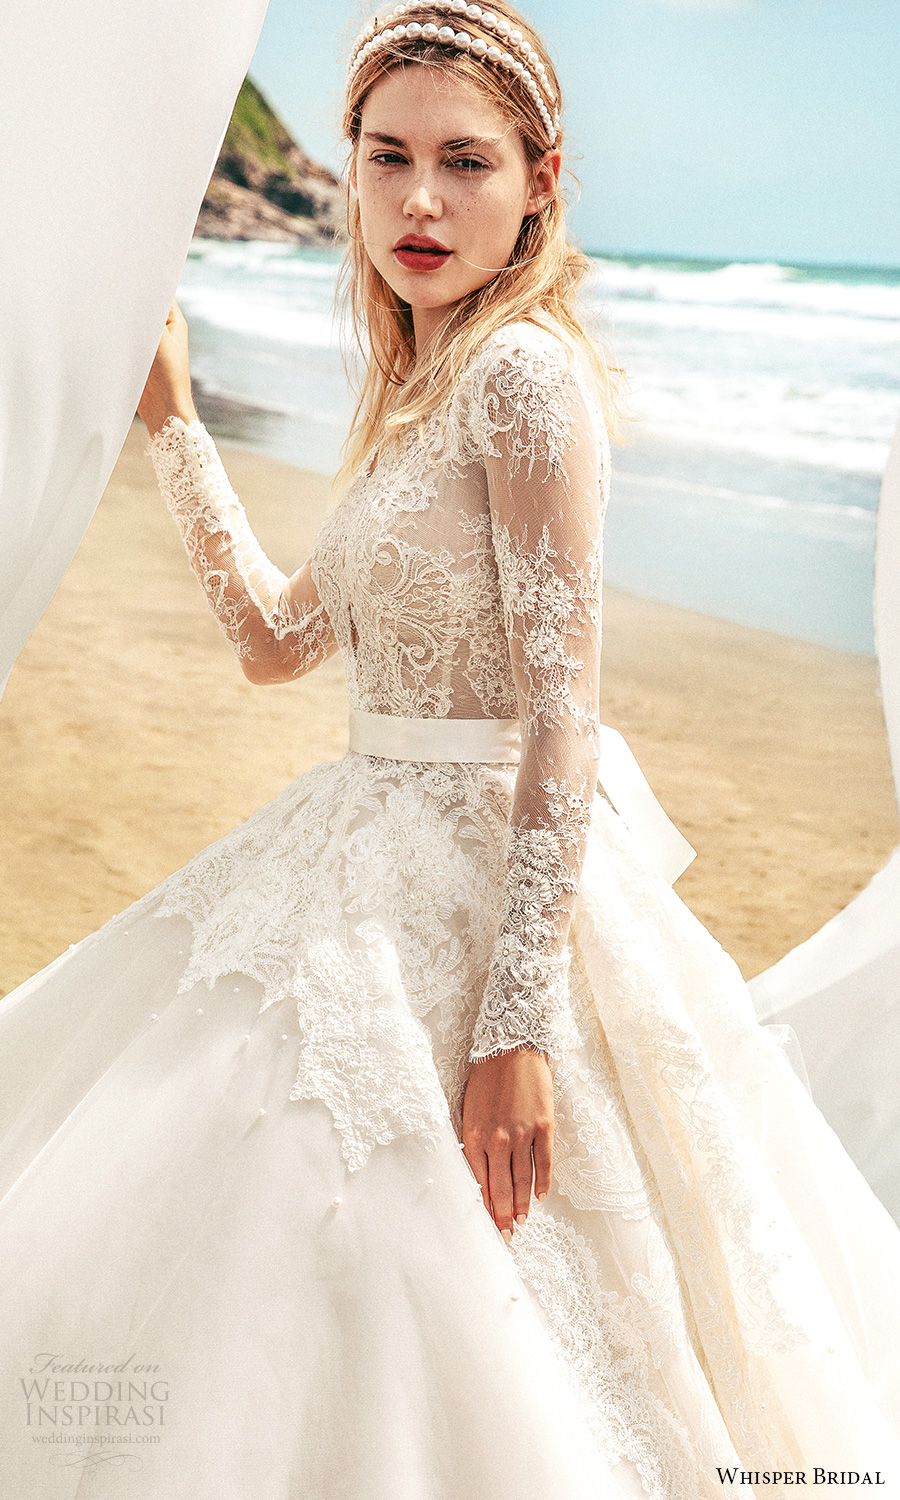 whisper bridal spring 2021 bridal illusion long sleeves plunging v neckline lace bodice a line ball gown wedding dress chapel train (12) zv